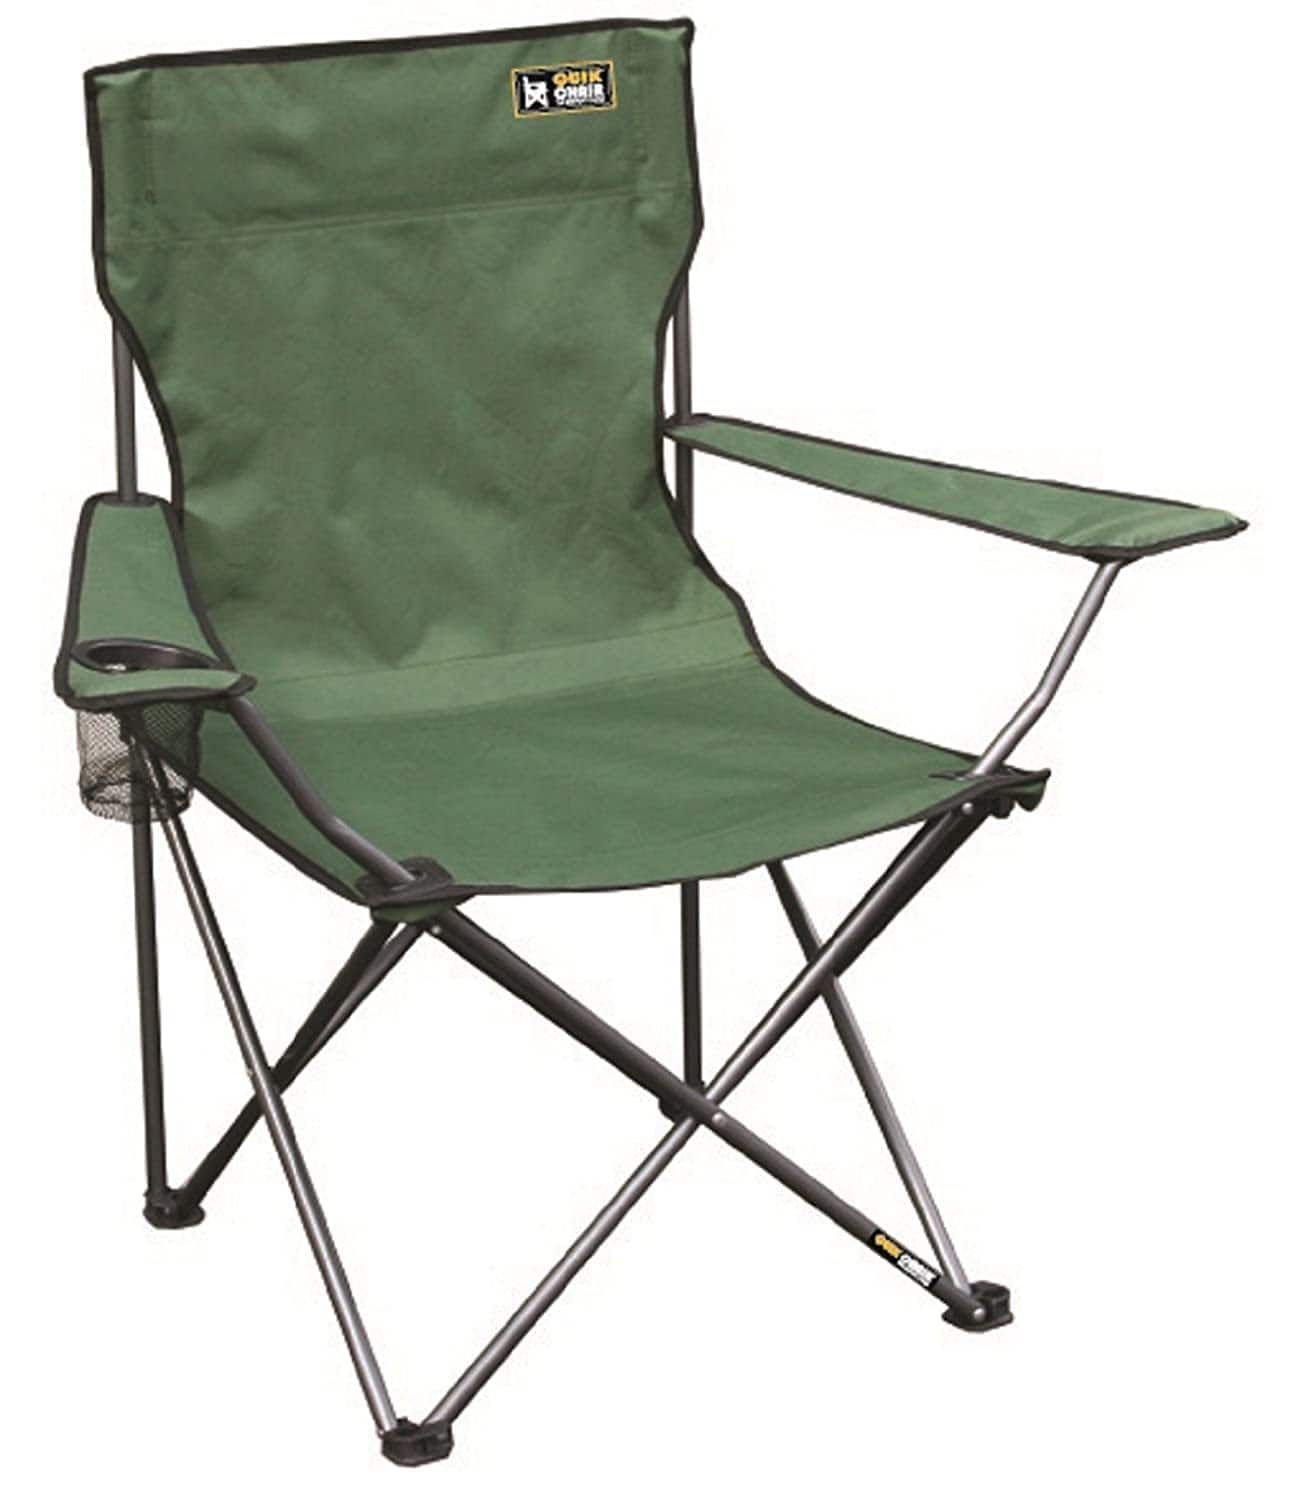 Quik Chair Portable Folding Chair with Arm Rest Cup Holder and Carrying and Storage Bag for $12.55